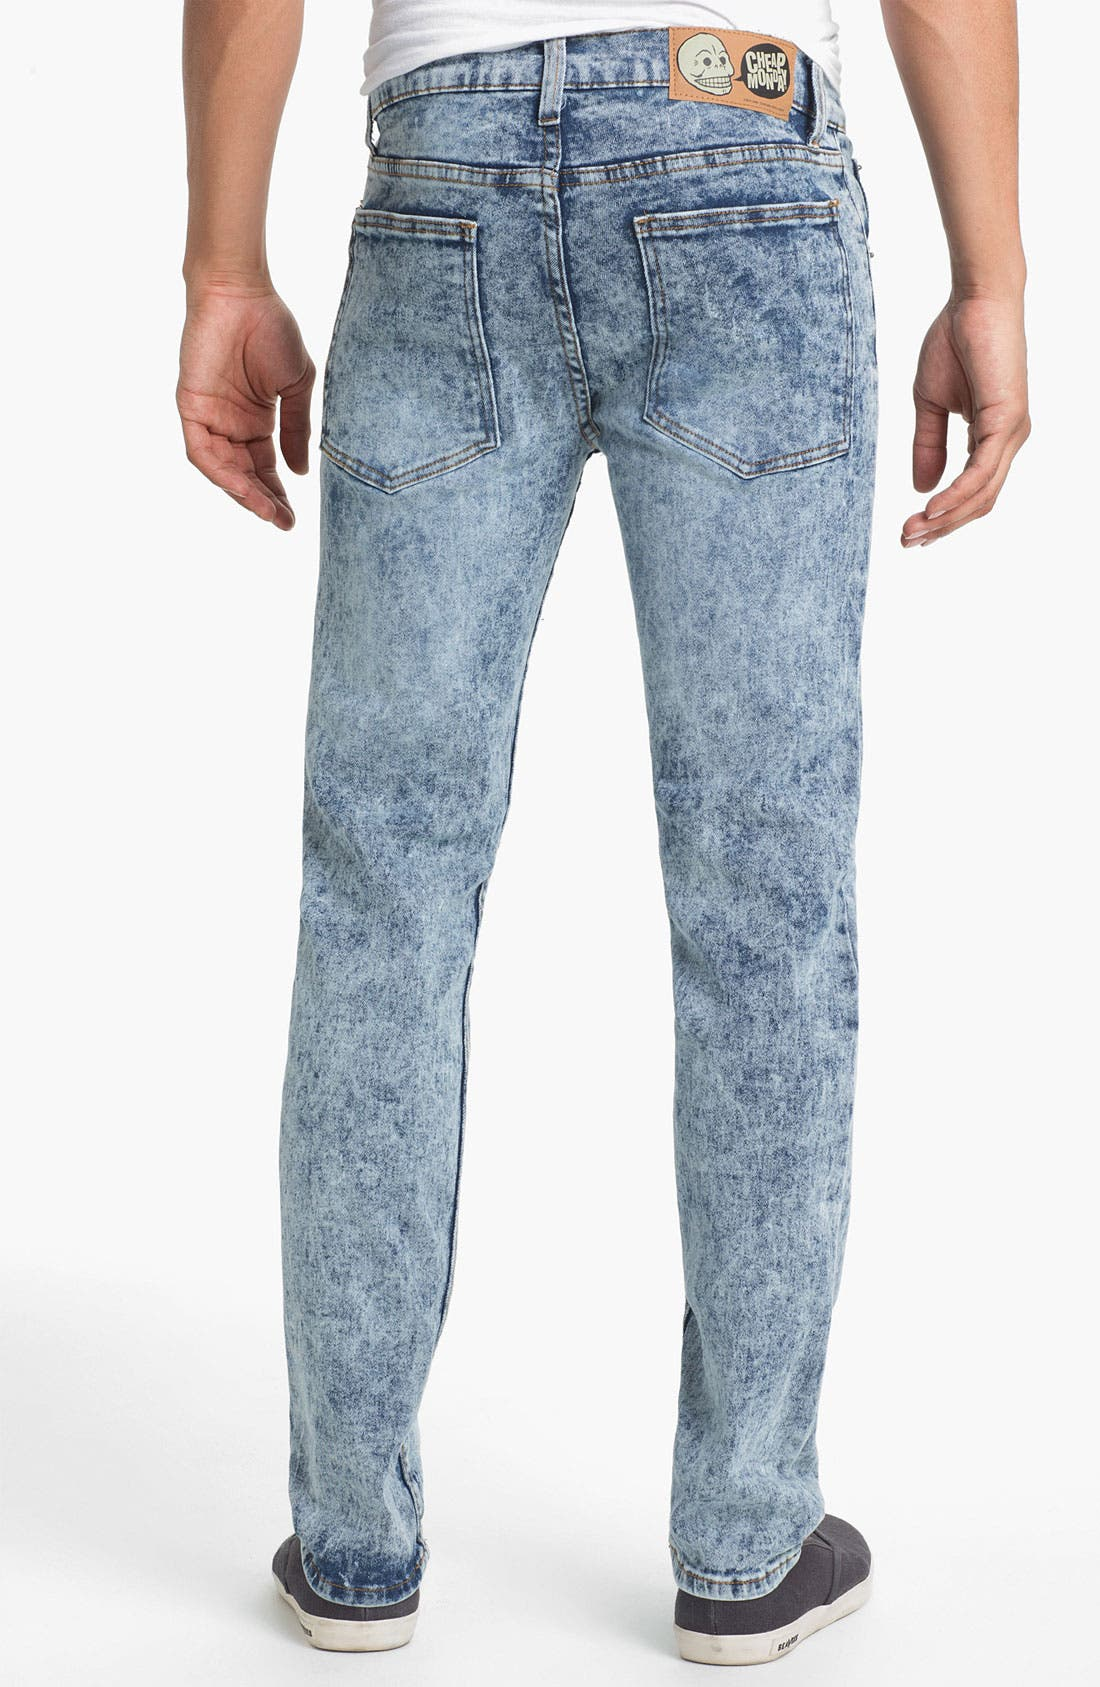 Alternate Image 1 Selected - Cheap Monday Tight Skinny Leg Jeans (Skin Used)